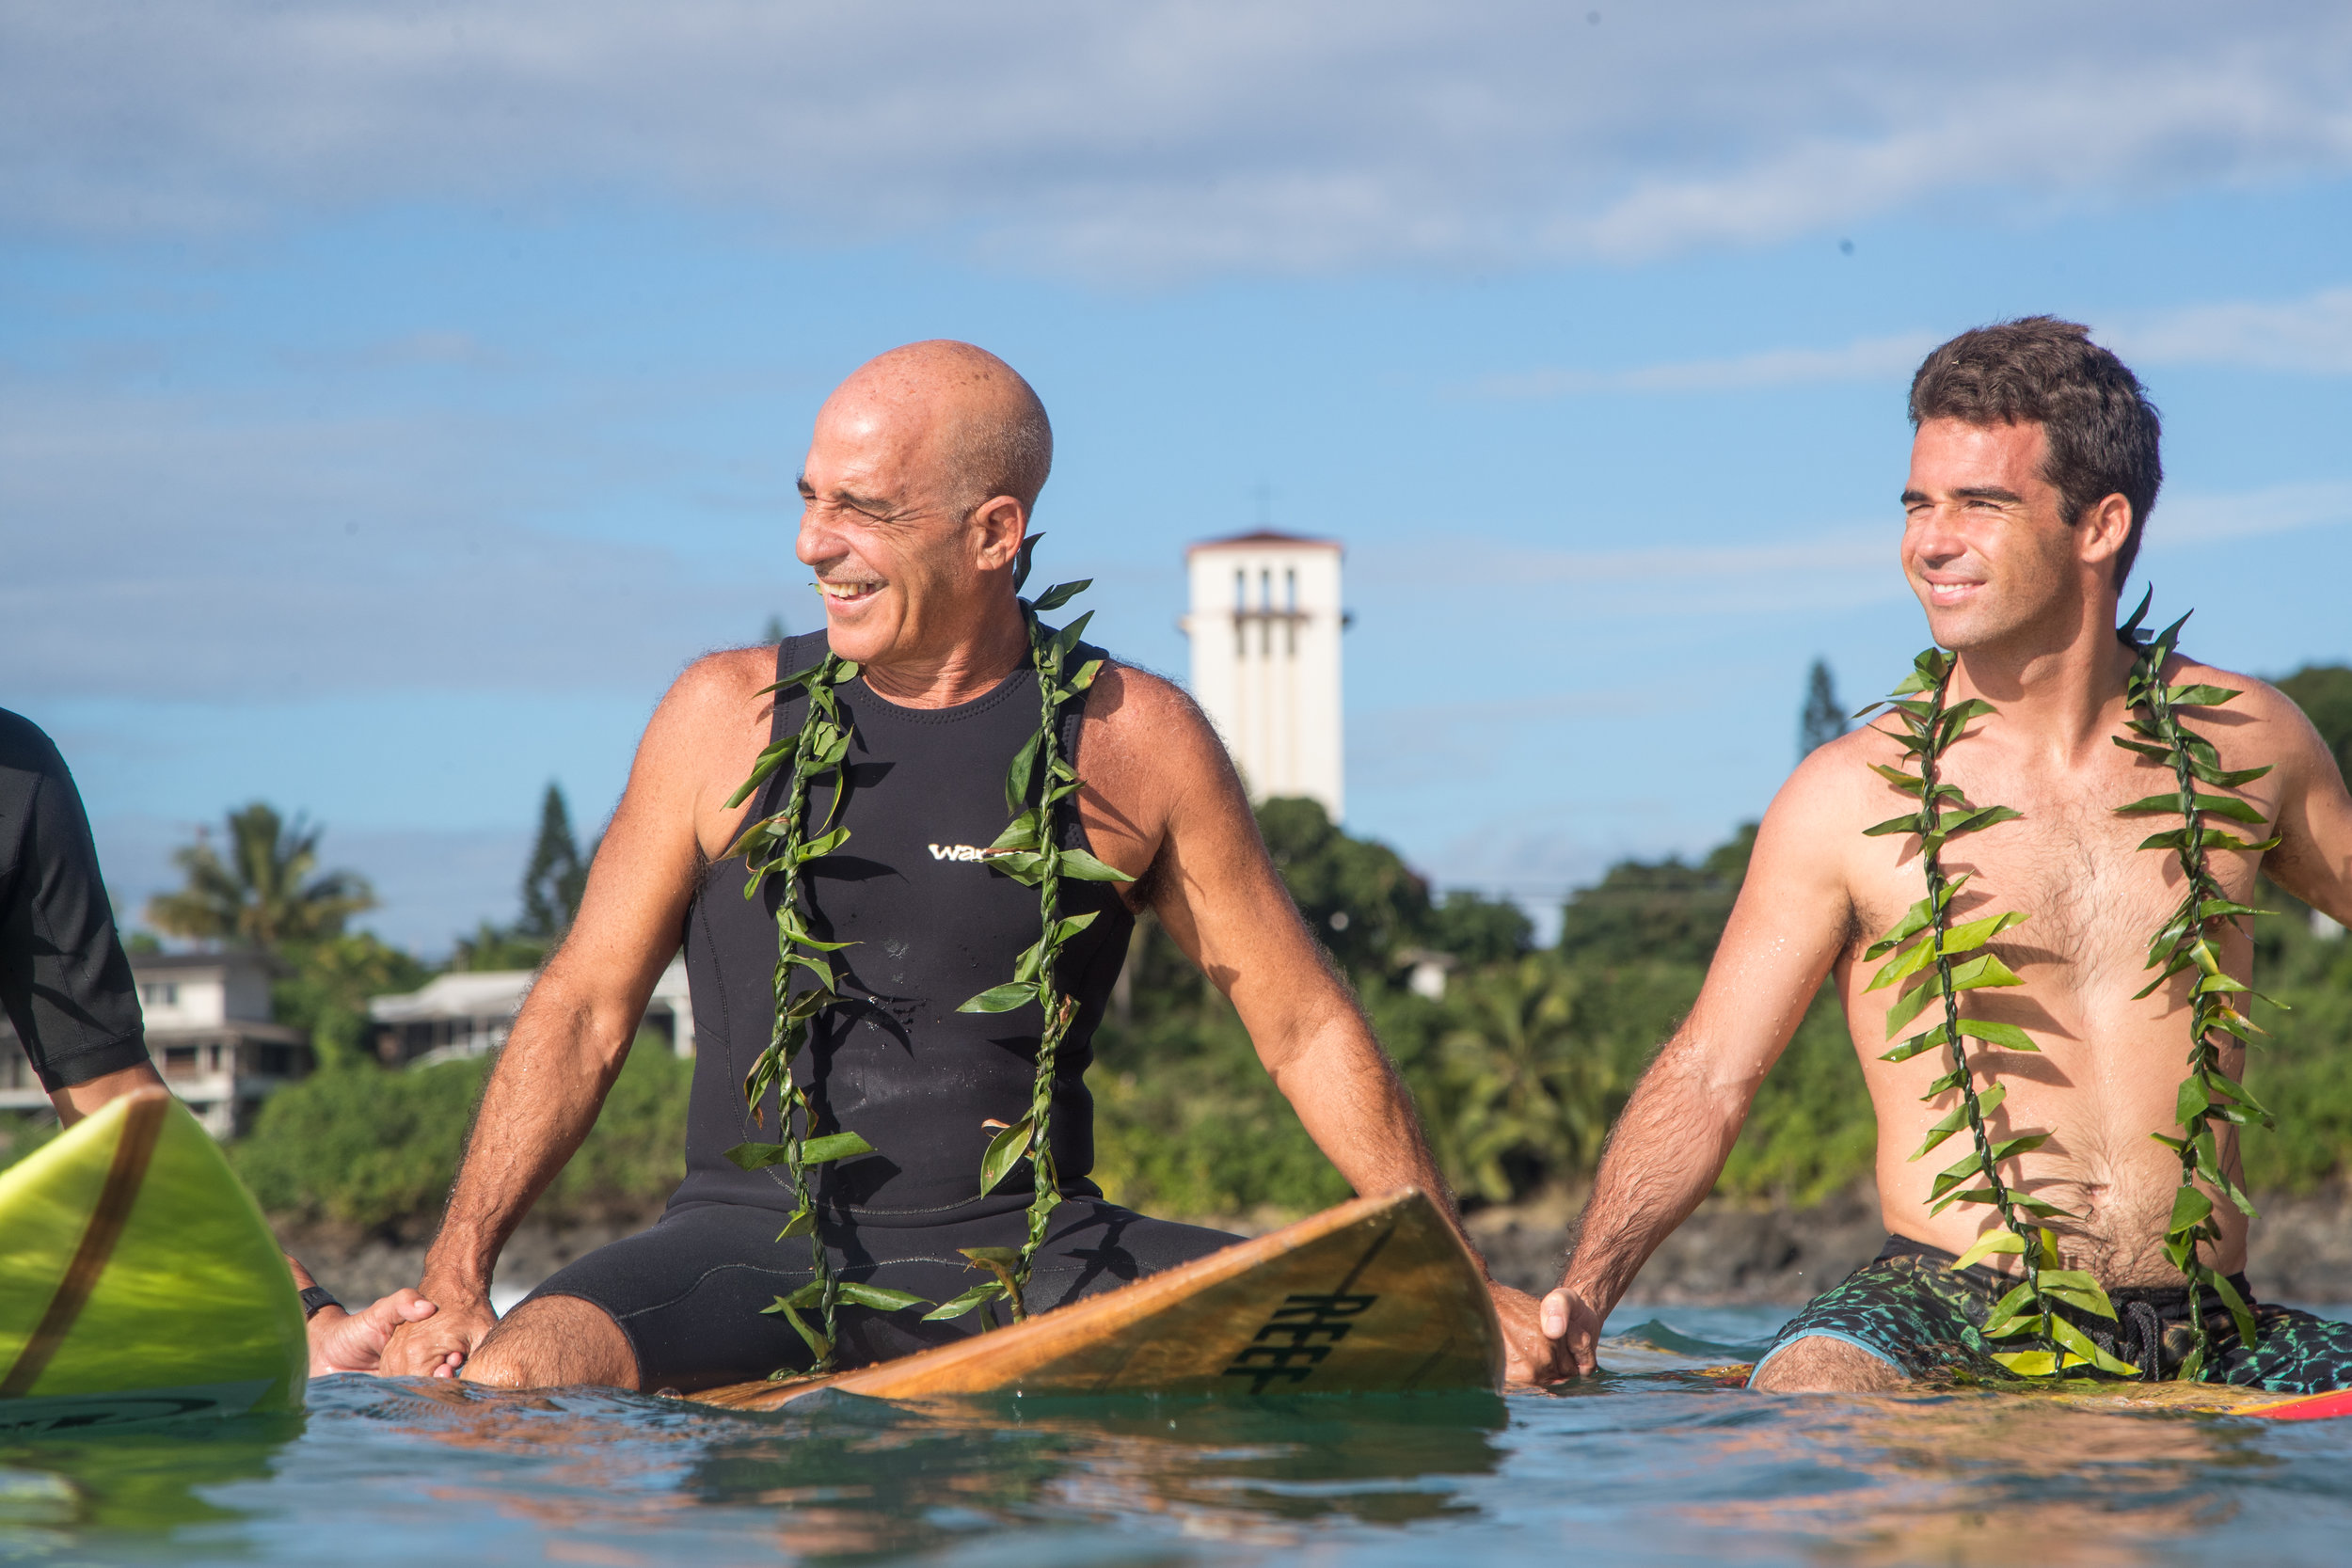 Mason Ho & father at the Eddie Opening Ceremony 2018